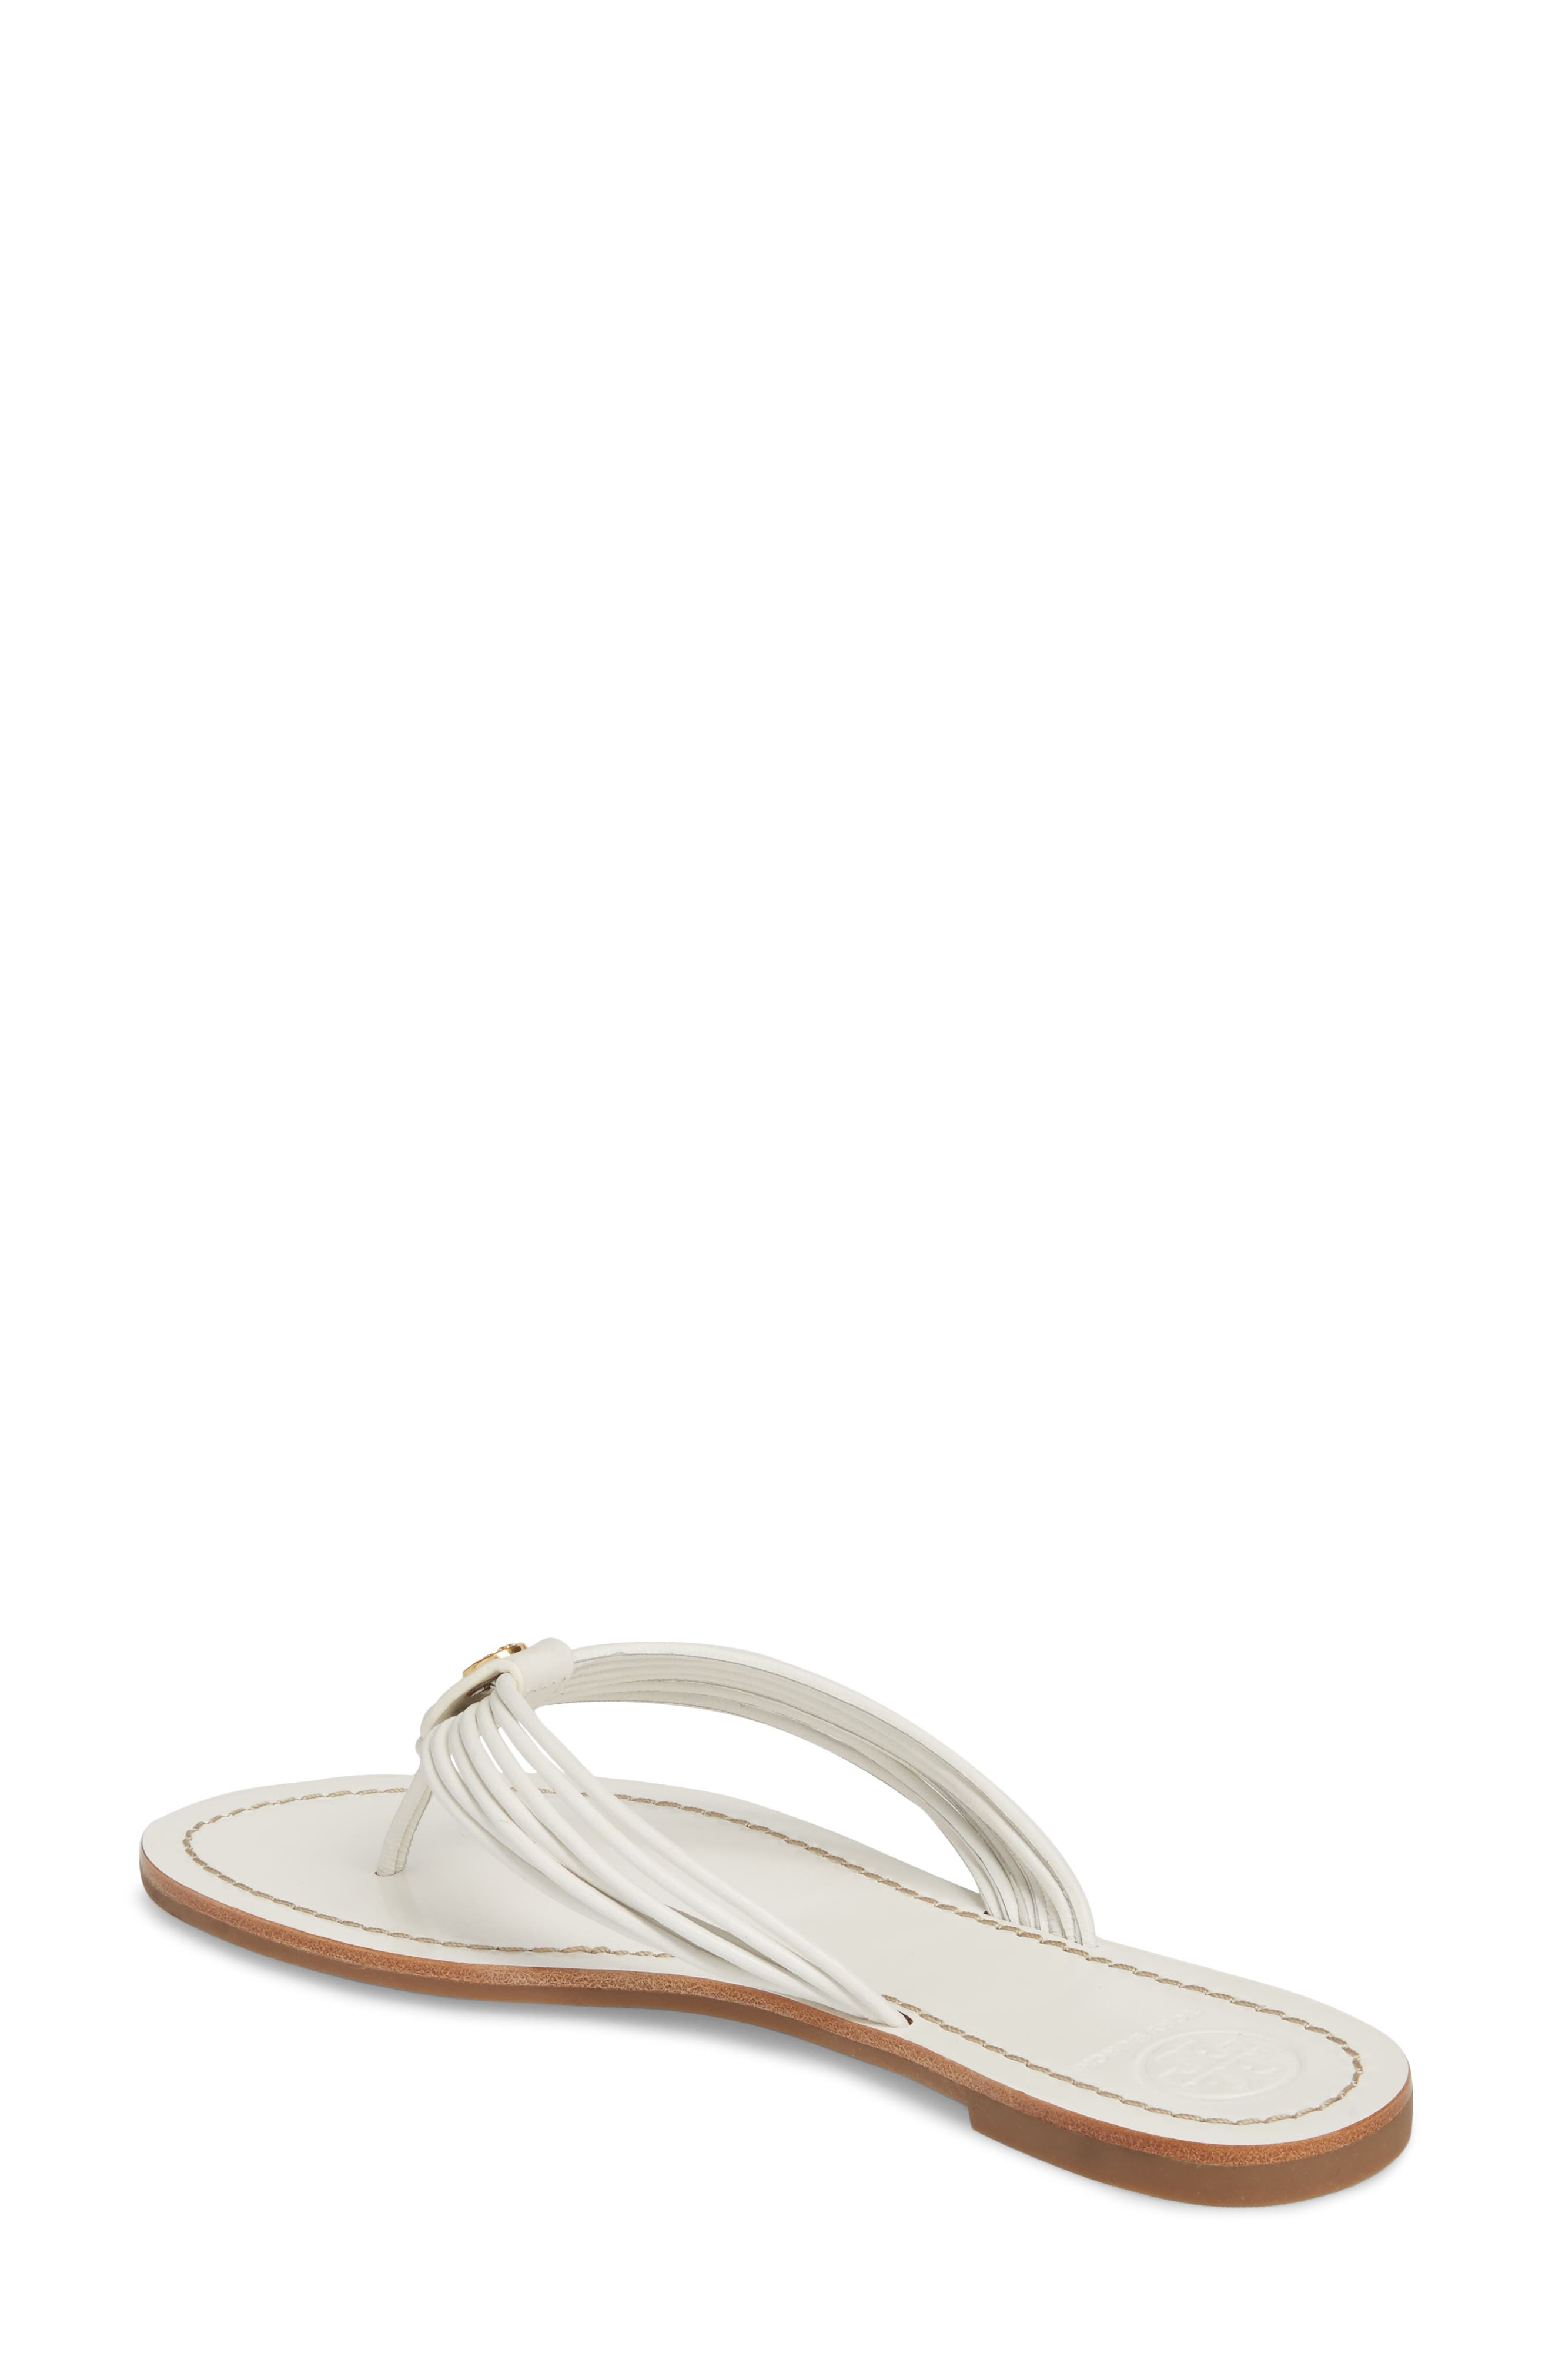 Sienna Strappy Thong Sandal,                             Alternate thumbnail 2, color,                             123